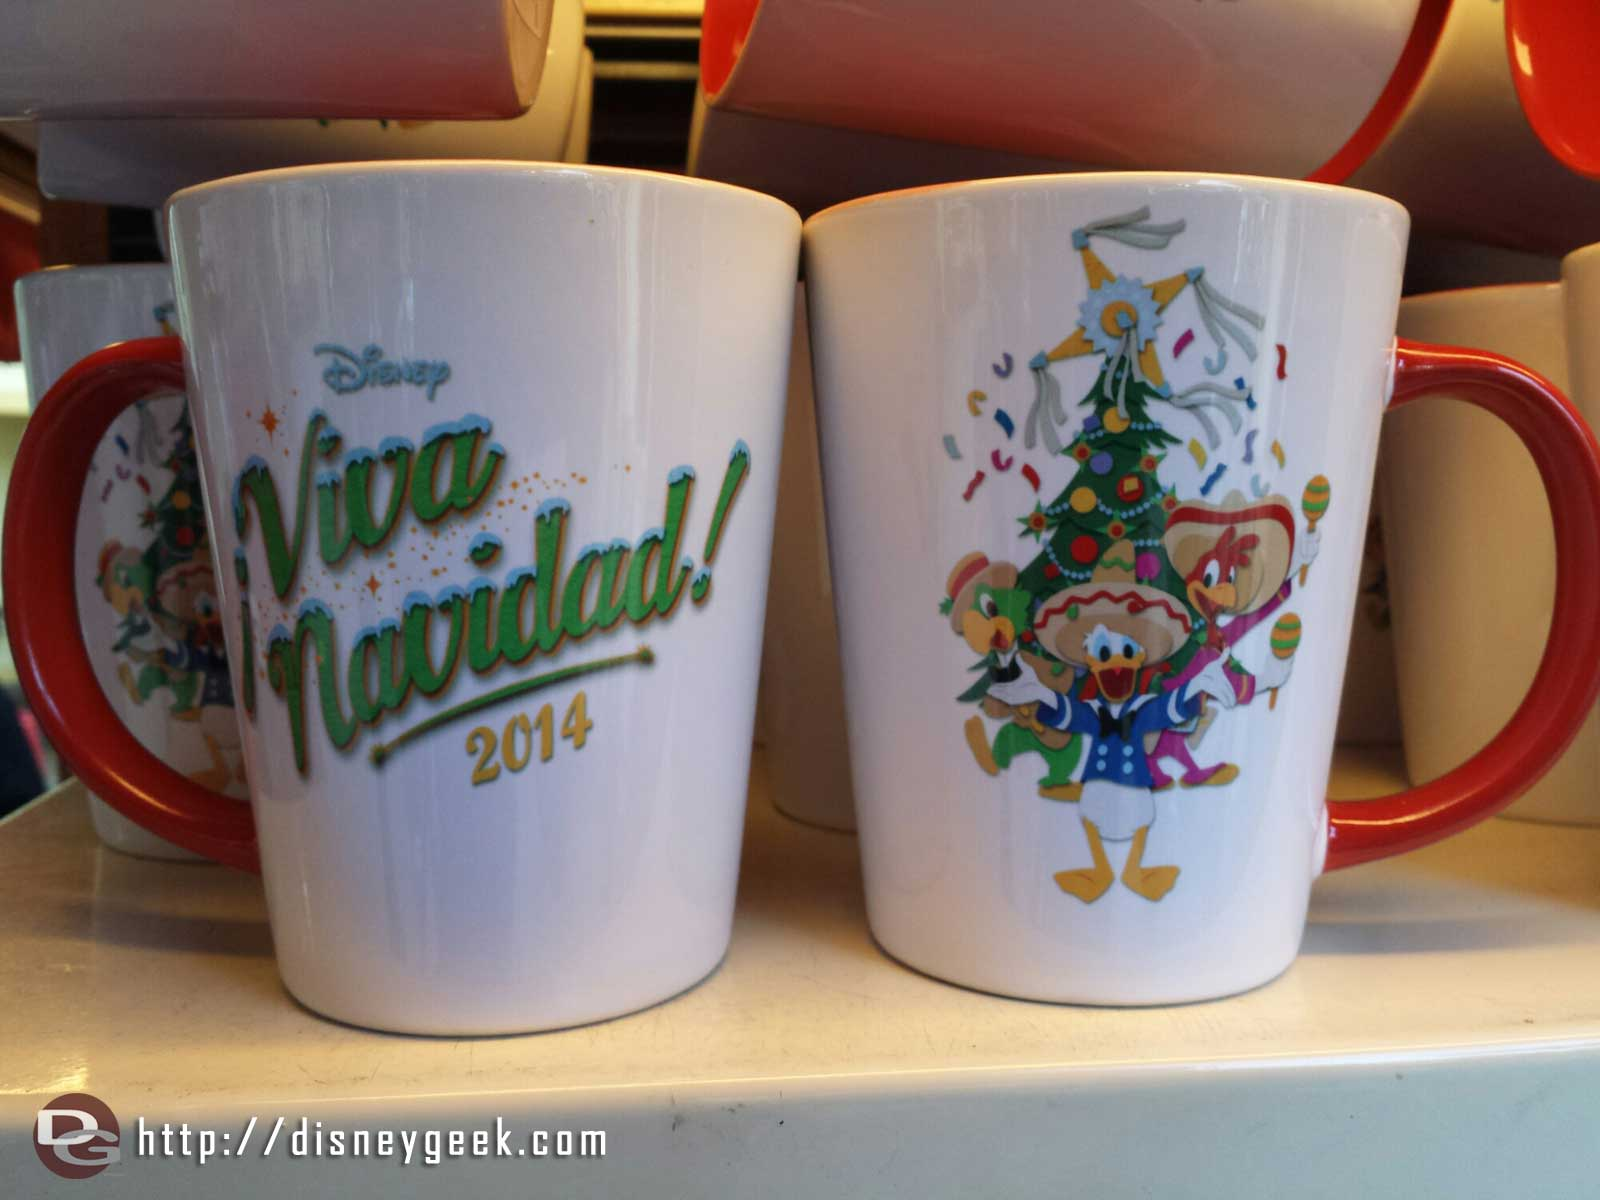 The 2014 ¡Viva Navidad! Logos on mugs in this picture